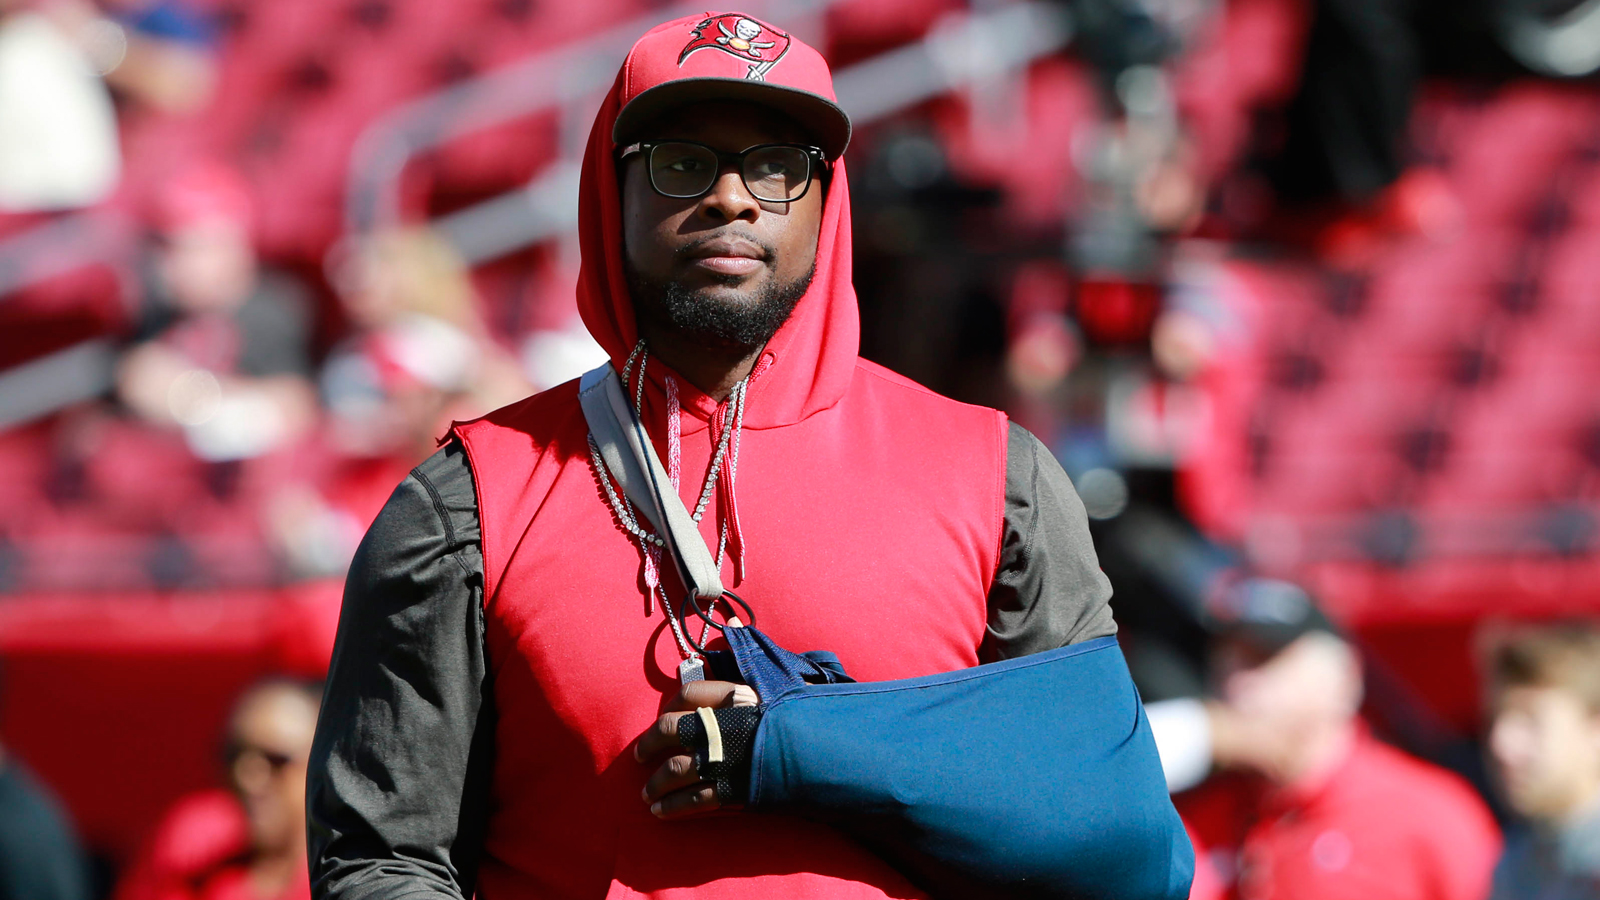 Bucs Pro Bowler Gerald McCoy says he's playing with torn rotator cuff